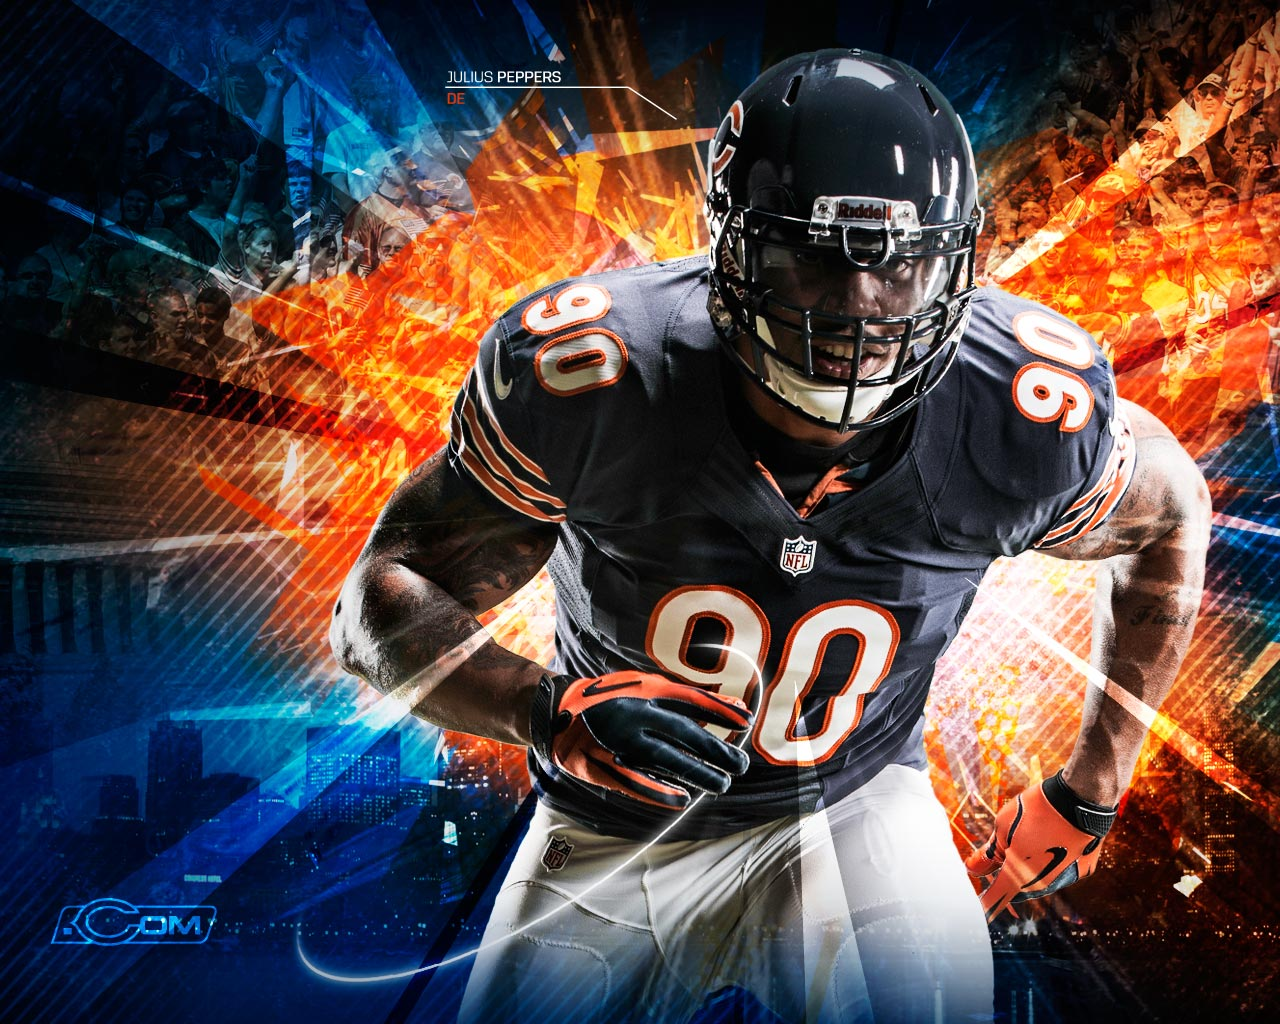 2012 chicago bears desktop wallpaper wallpapersafari